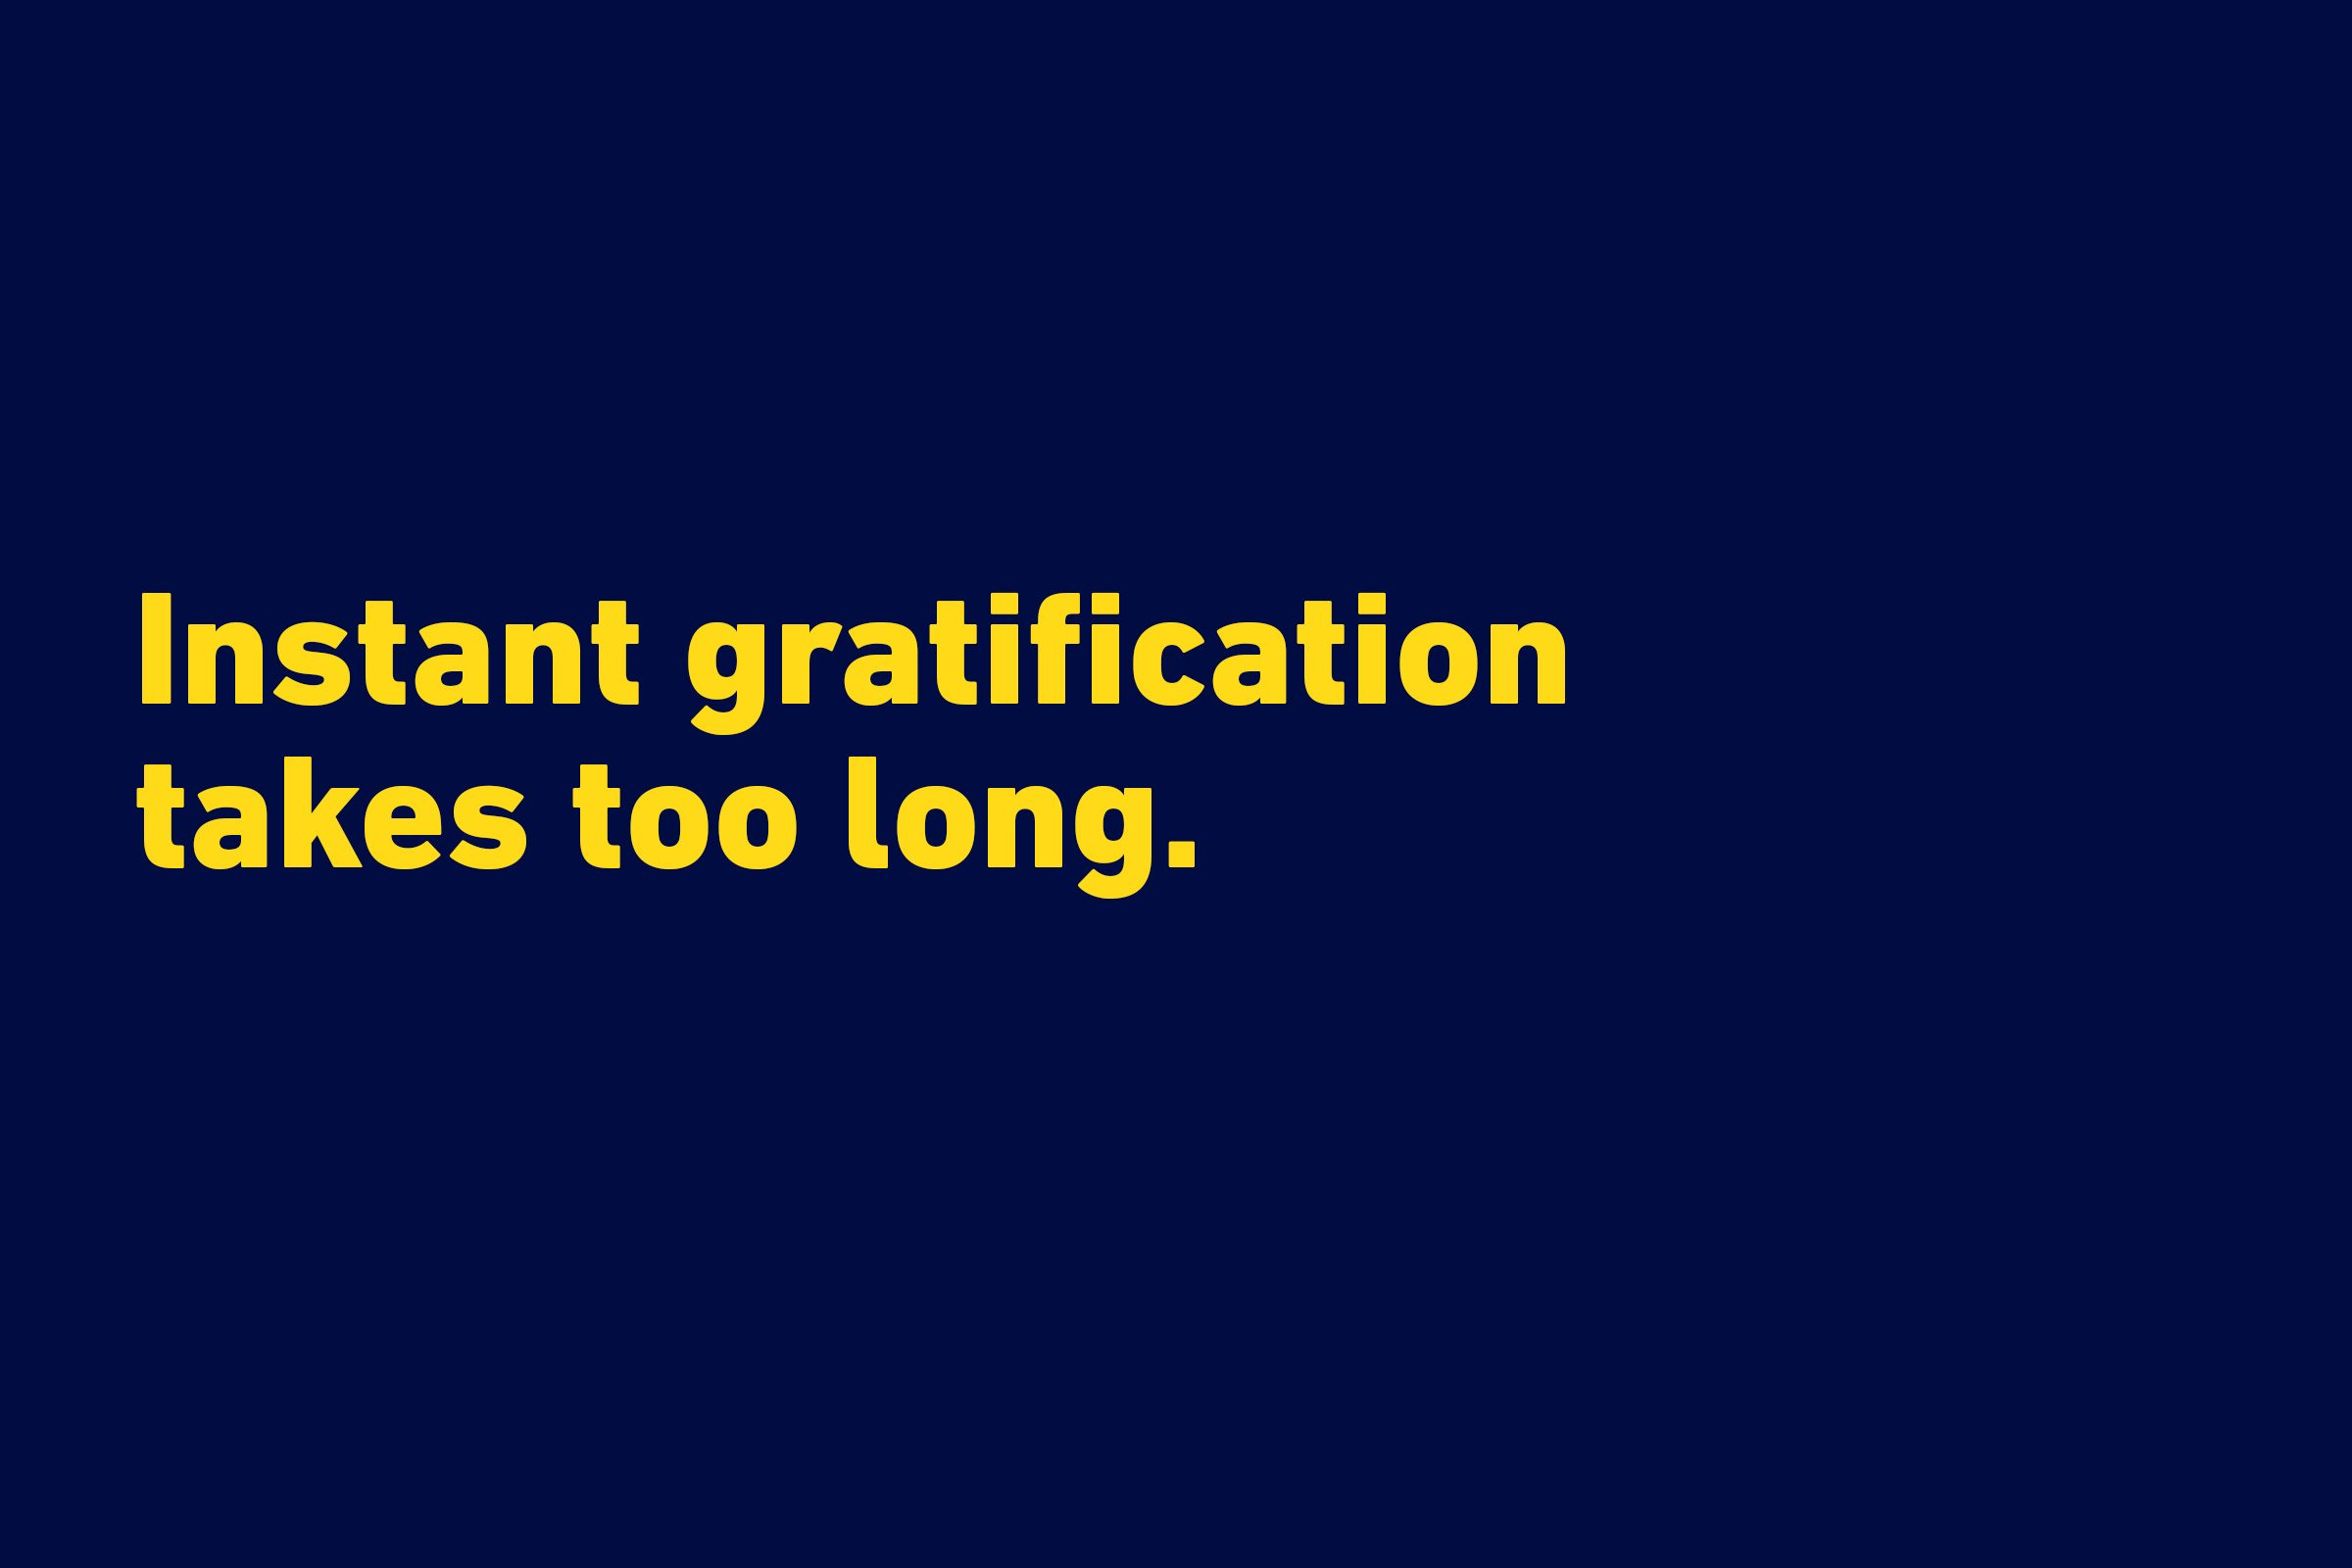 funny quotes gratification carrie fisher